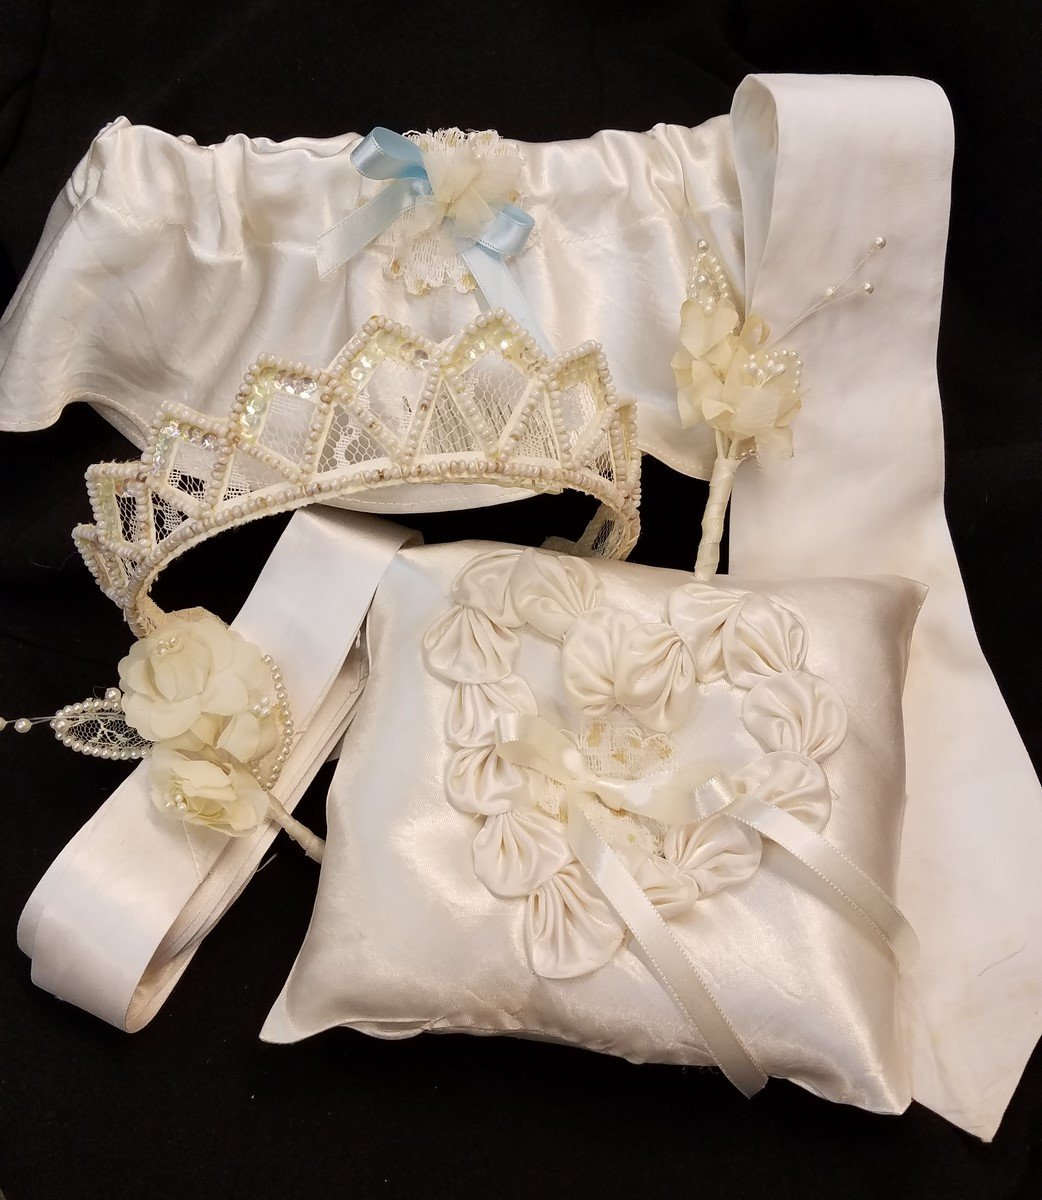 Completed items made from old wedding gown